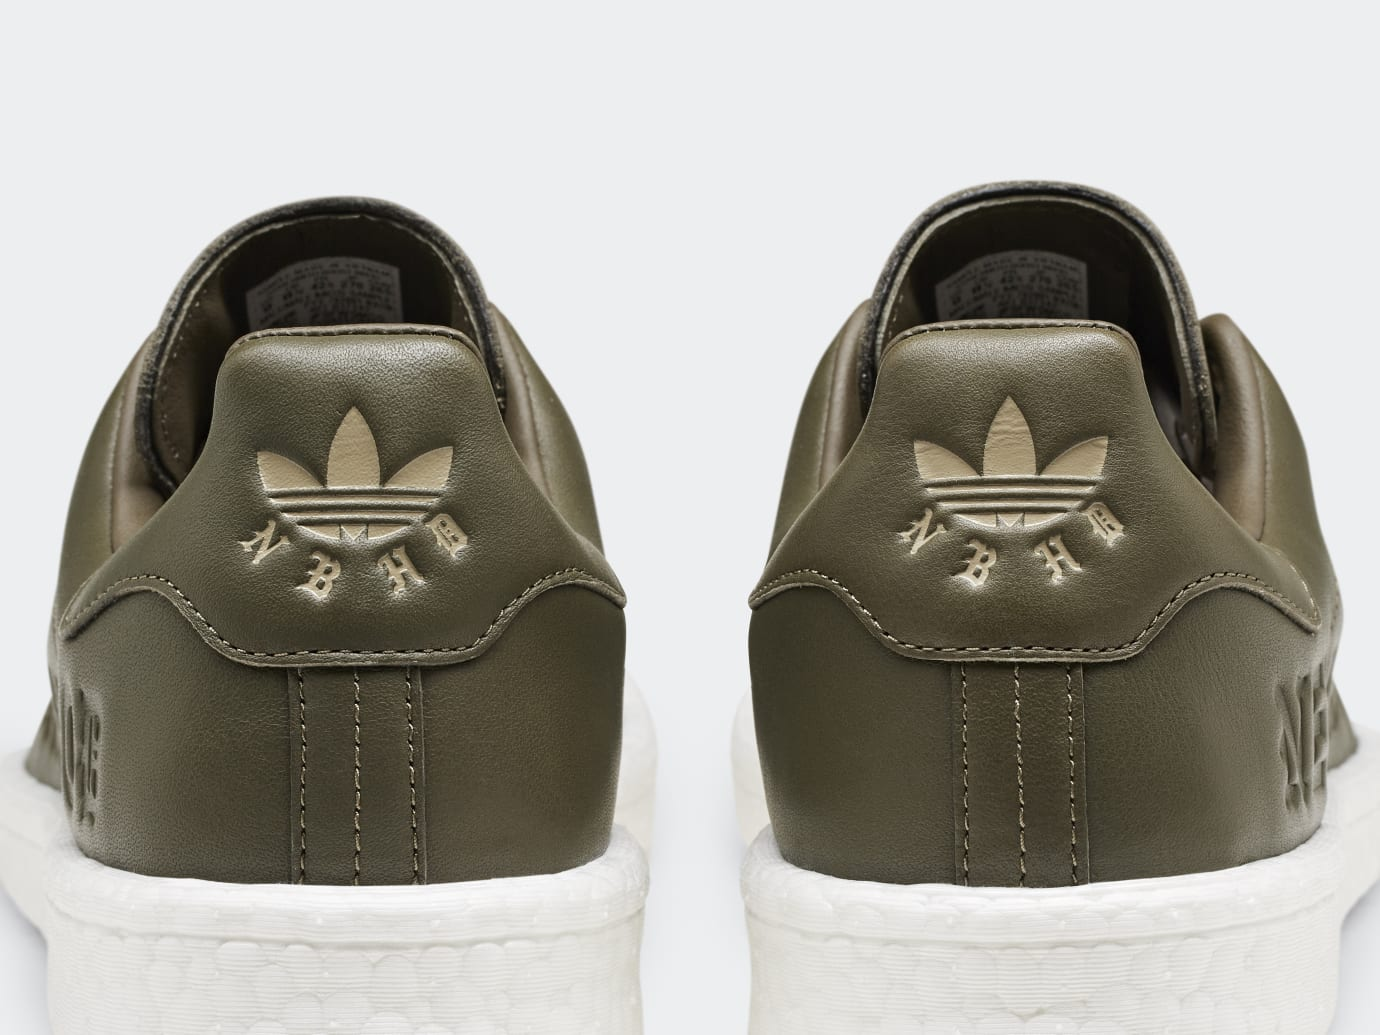 Neighborhood x Adidas Stan Smith Boost B37342 (Heel)